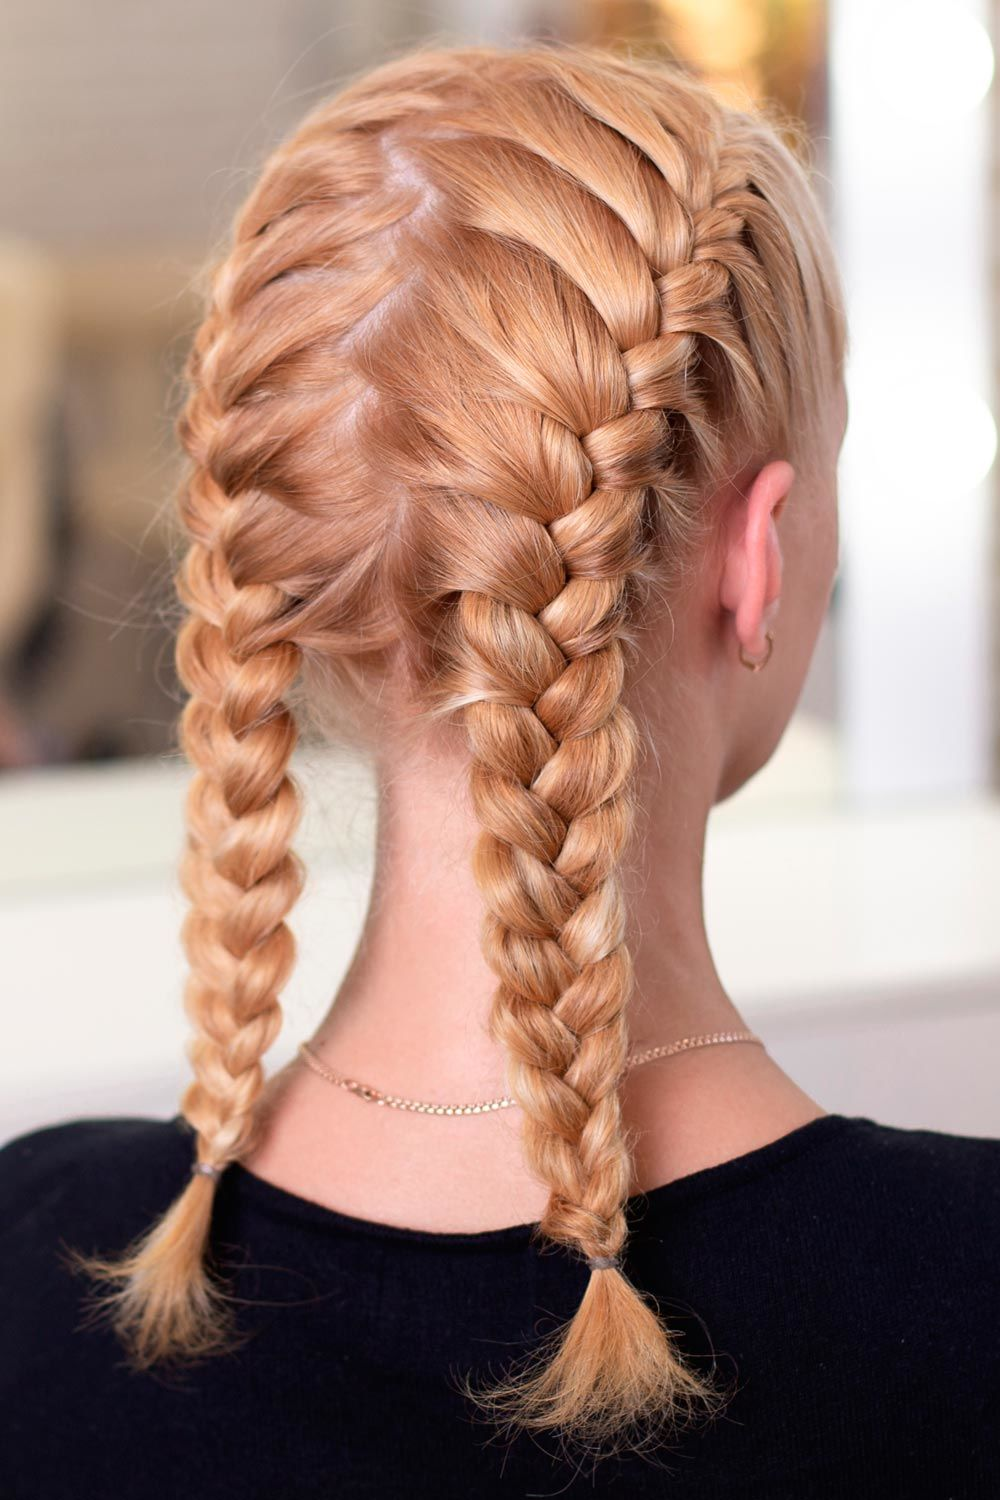 French Two Braids